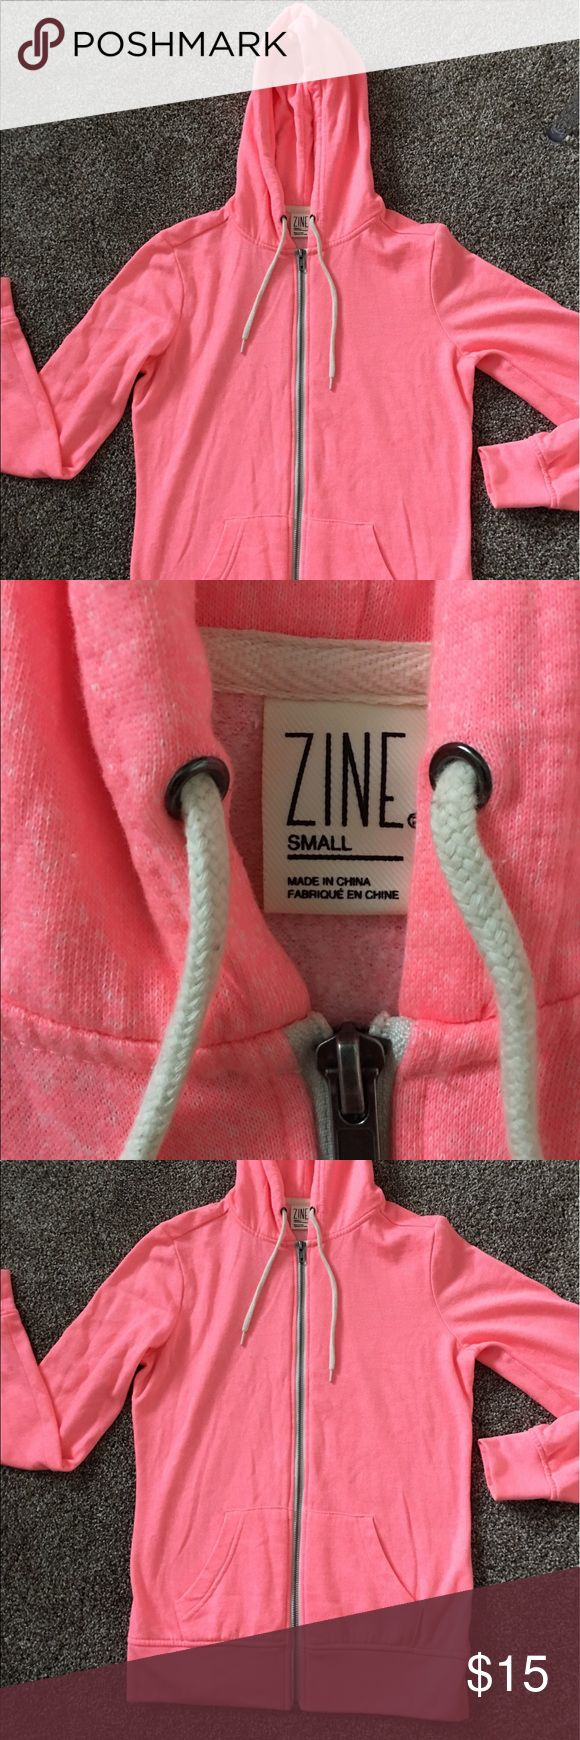 Zumiez Zip Up Hoodie Selling this bright pink zip up hoodie I got from zumiez. The brand is zine. Great quality zip up and in brand new condition. Size small! Zine Clothing Jackets & Coats